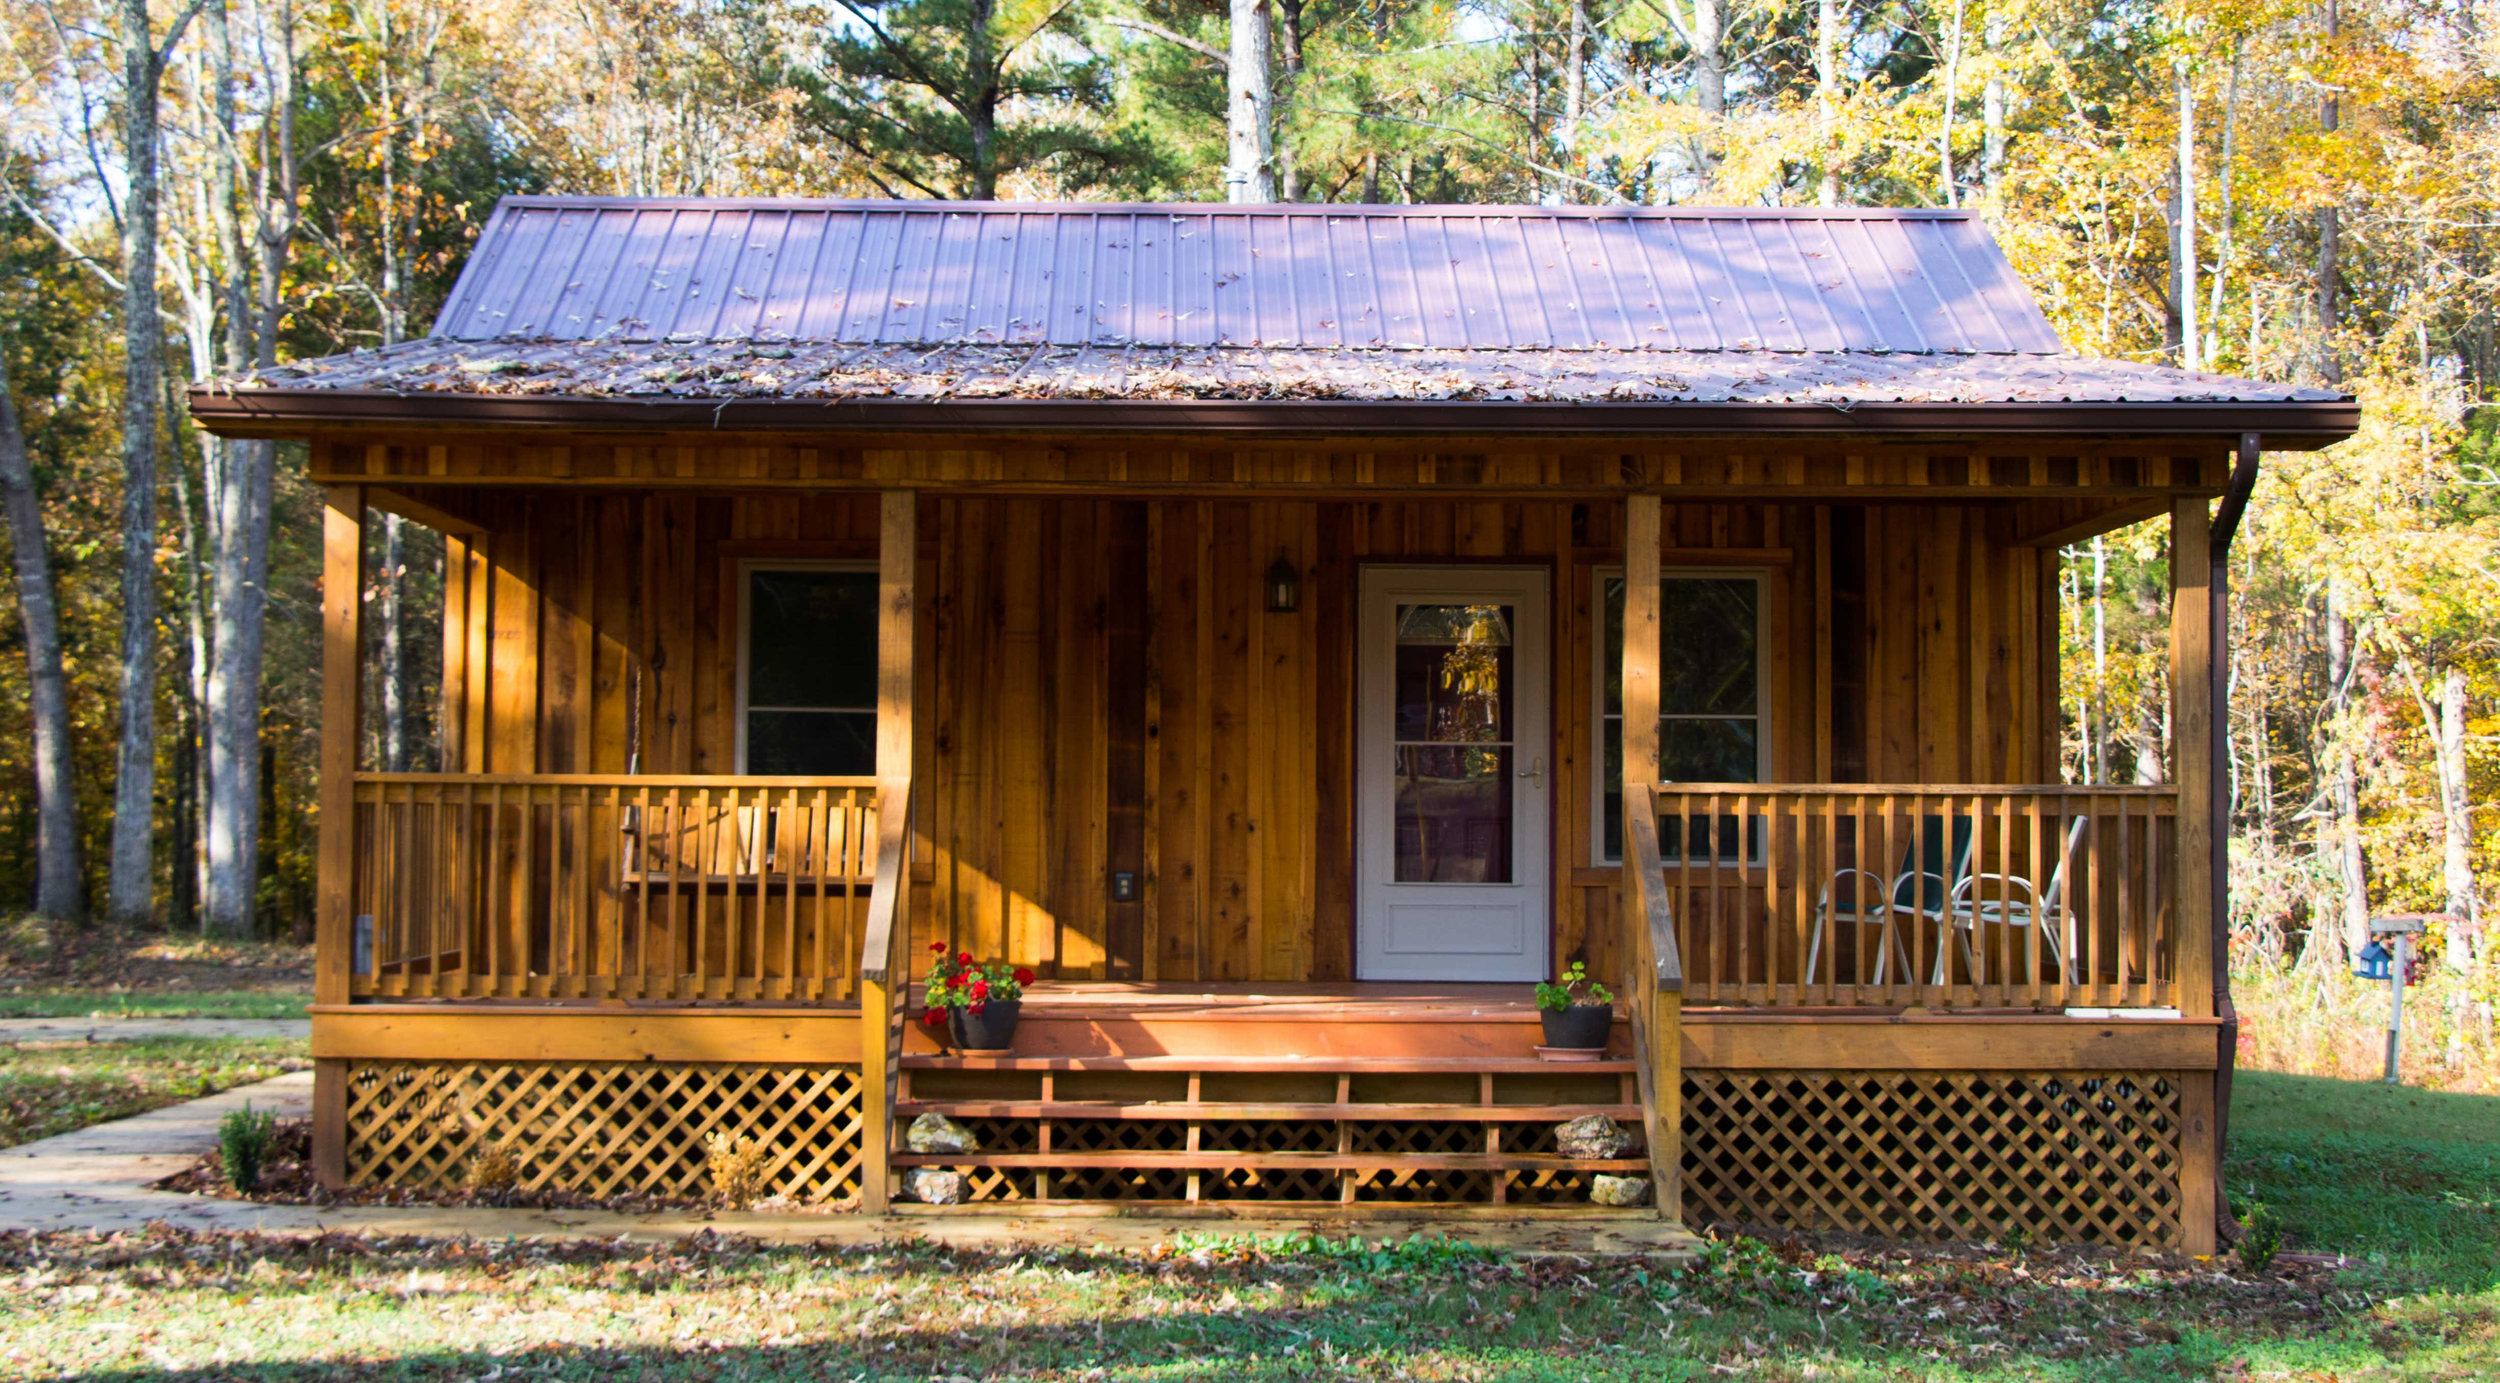 The Cabin at Airbnb